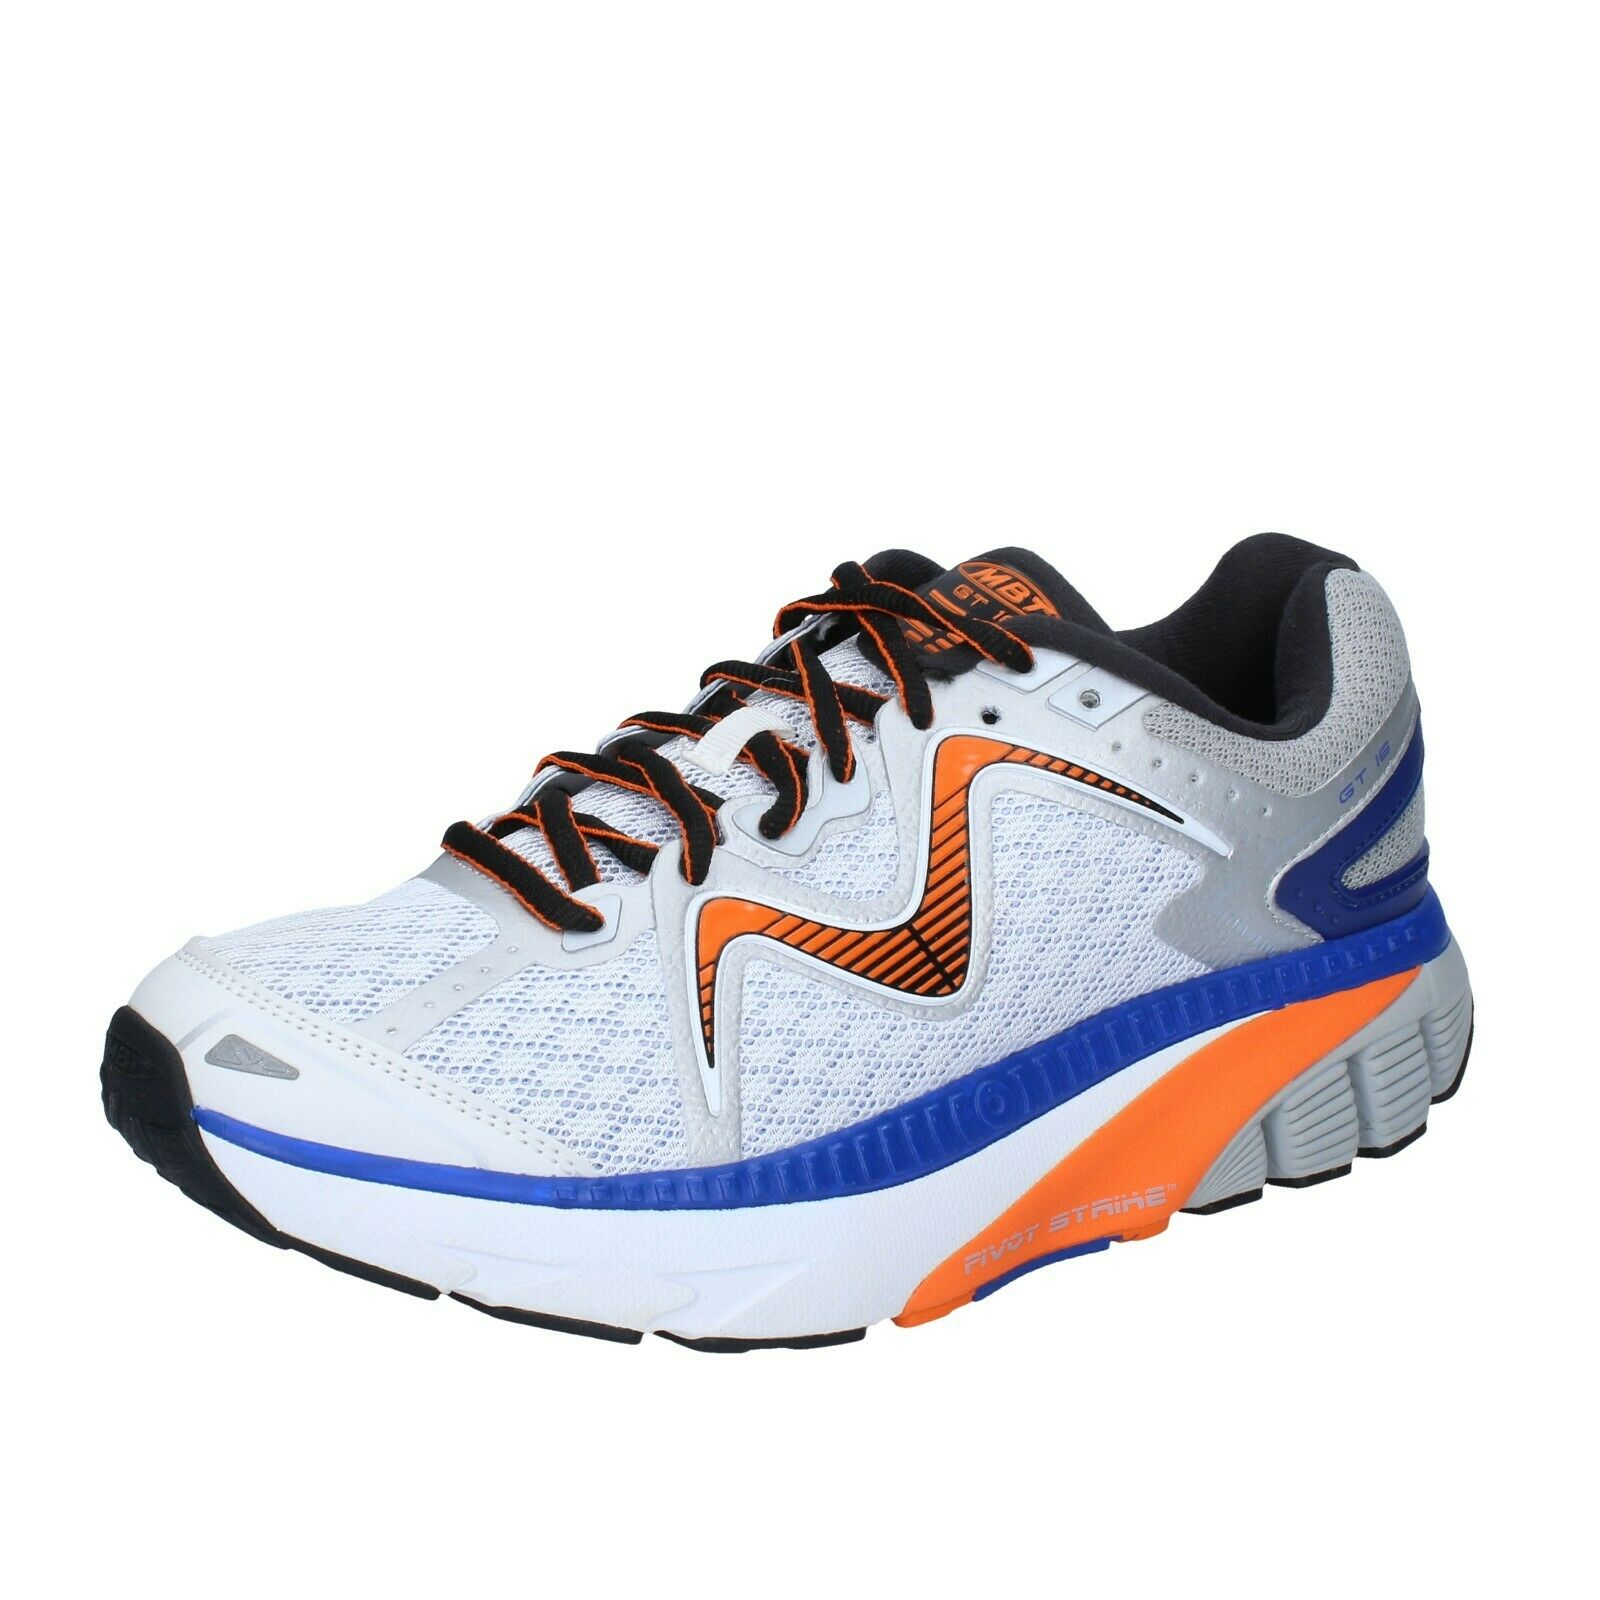 Men's shoes MBT 8 () sneakers bluee white textile performance BS380-41,5